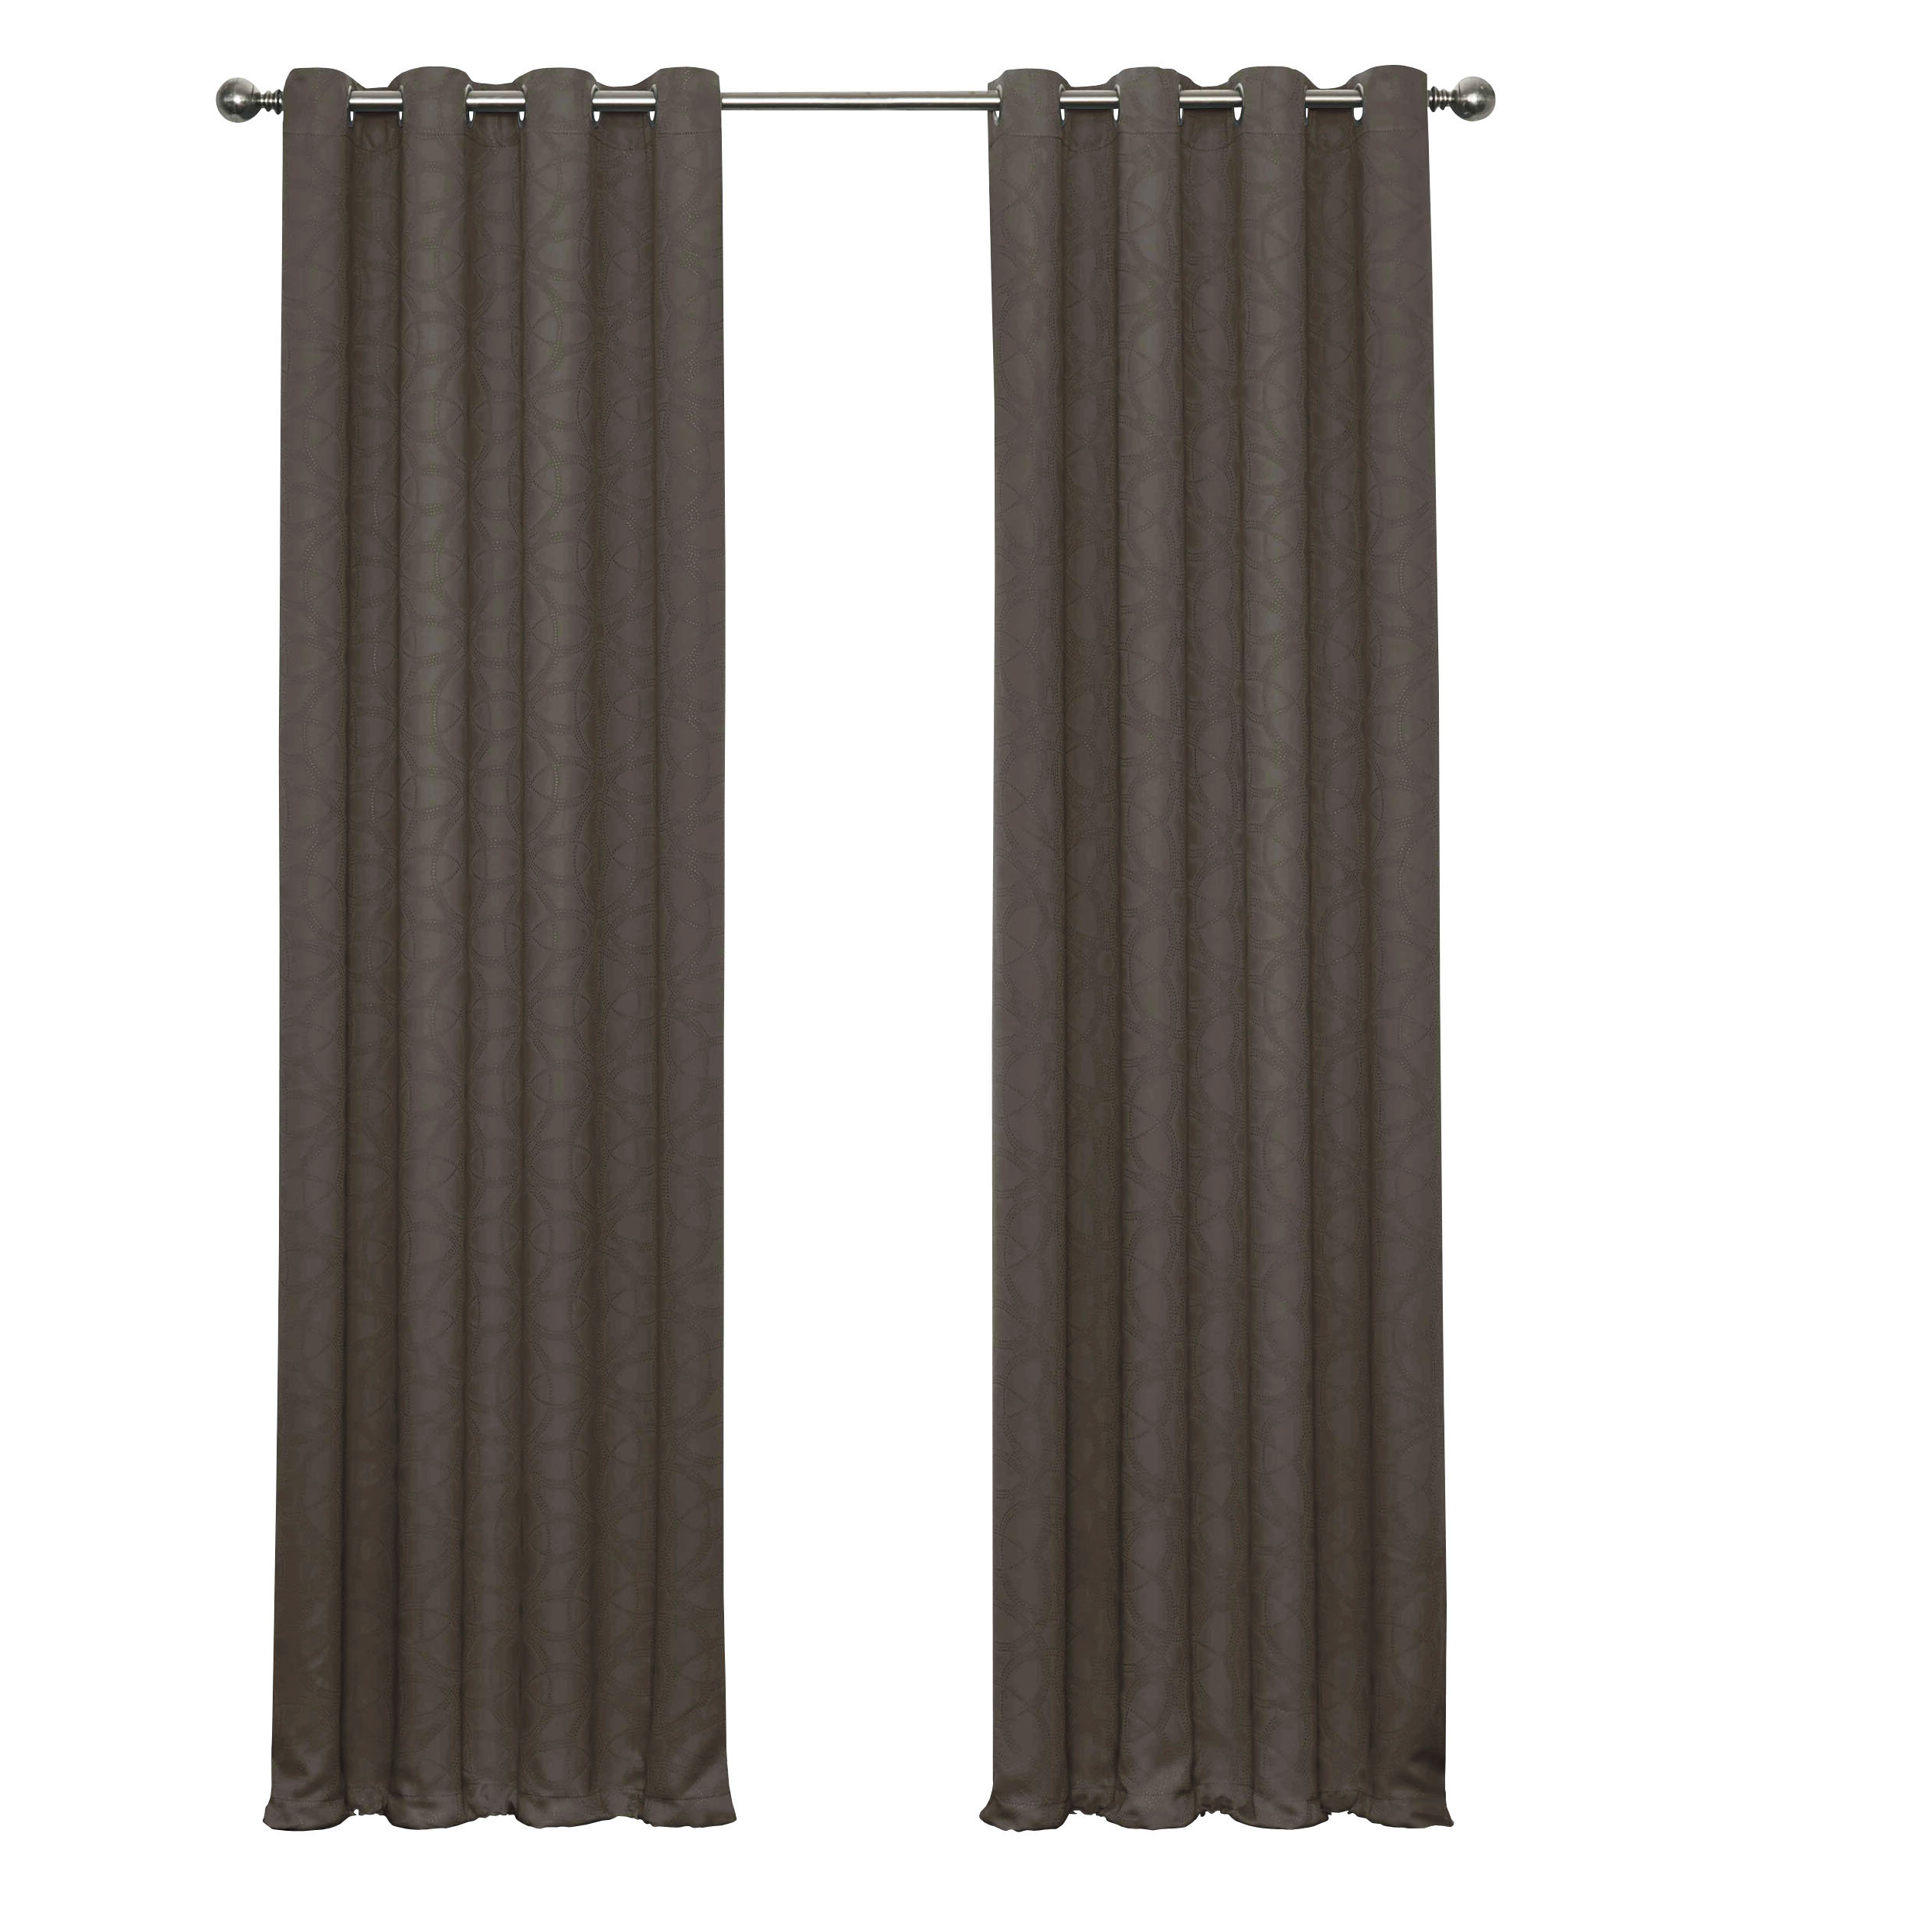 Shively Thermaweave Geometric Blackout Thermal Single Curtain Panel For Newest Thermaweave Blackout Curtains (View 10 of 20)